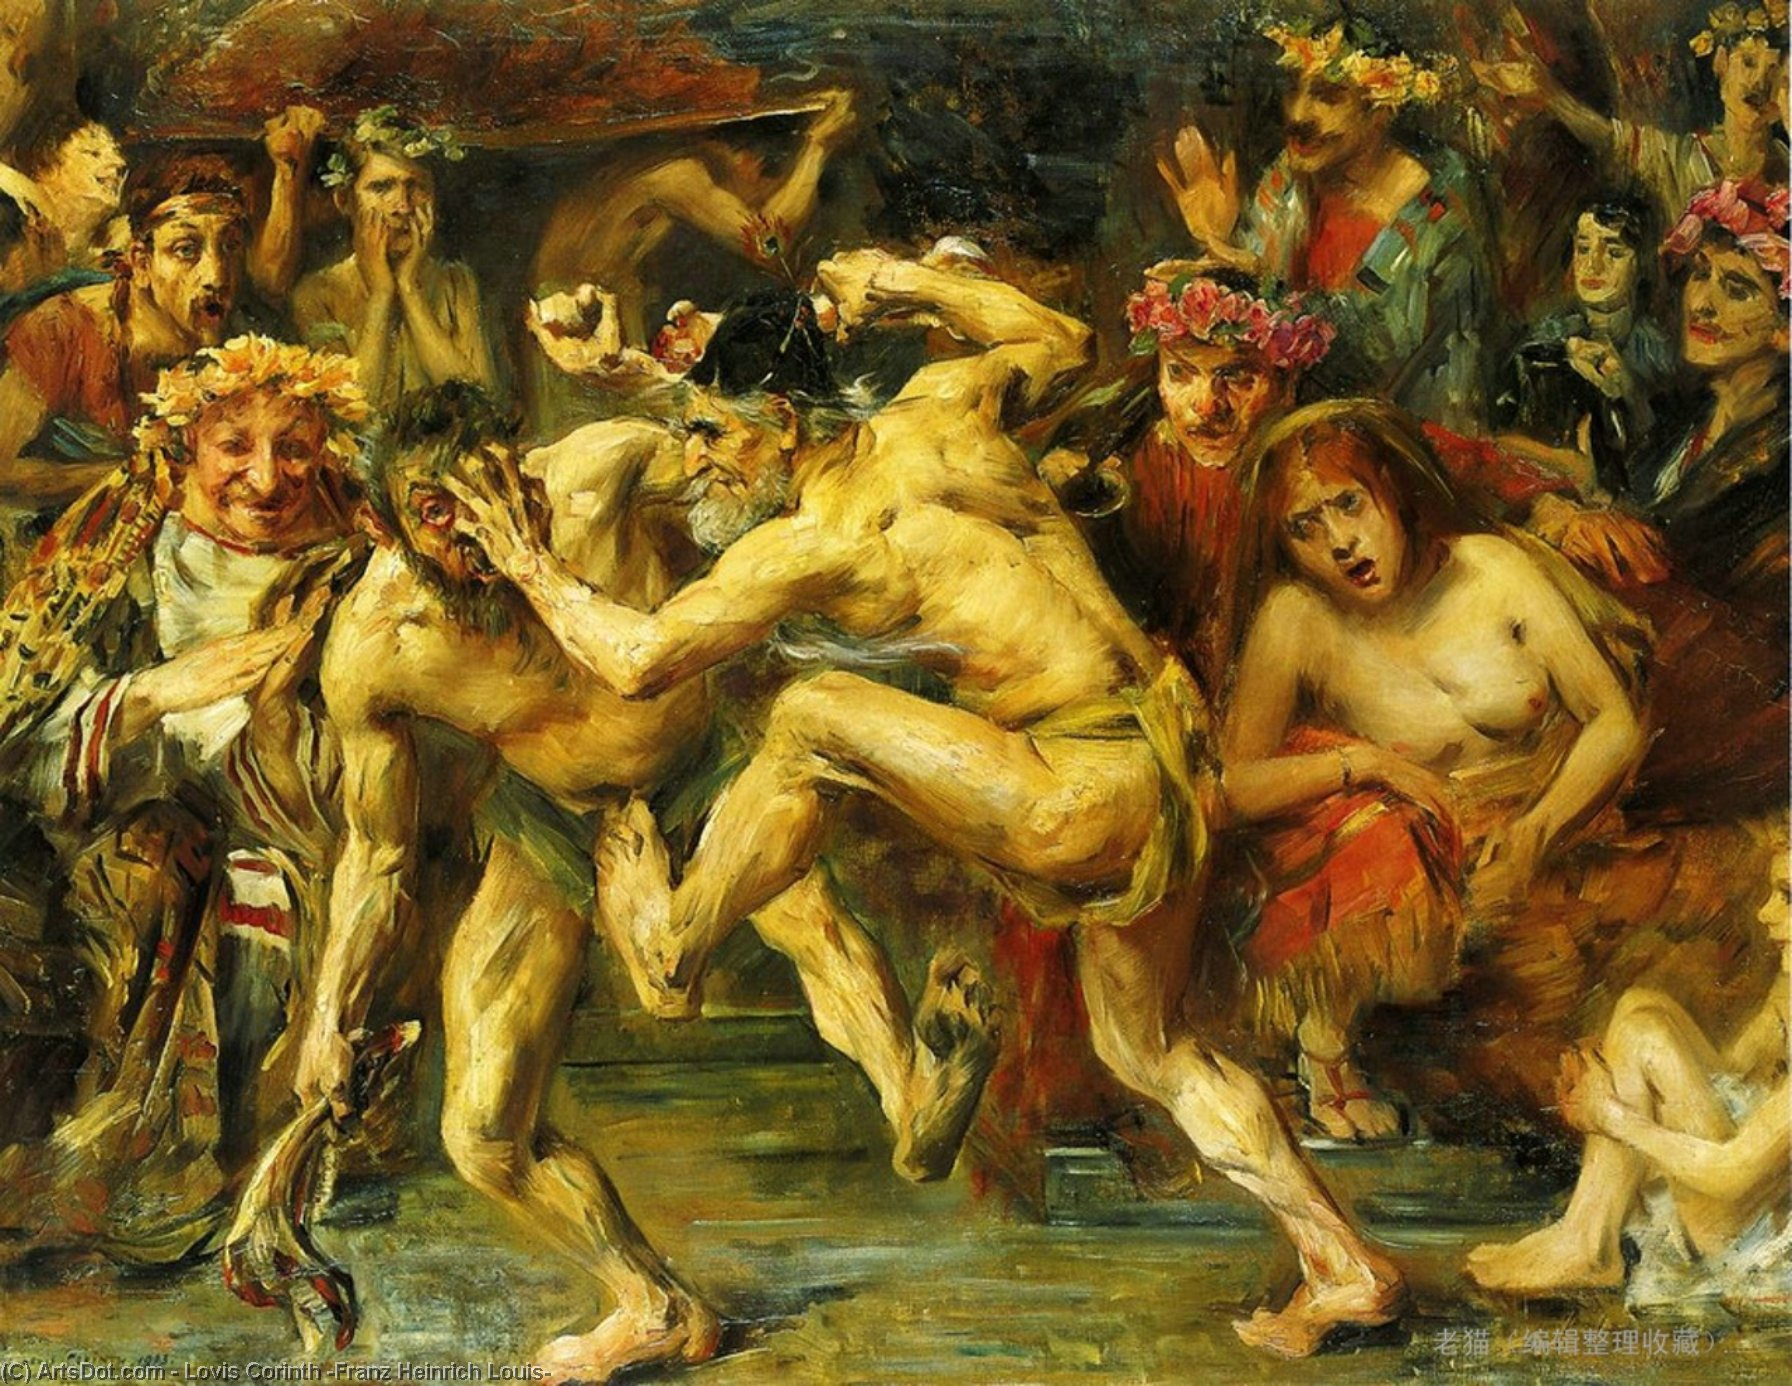 Wikioo.org - The Encyclopedia of Fine Arts - Painting, Artwork by Lovis Corinth (Franz Heinrich Louis) - Odysseus Fighting with the Beggar